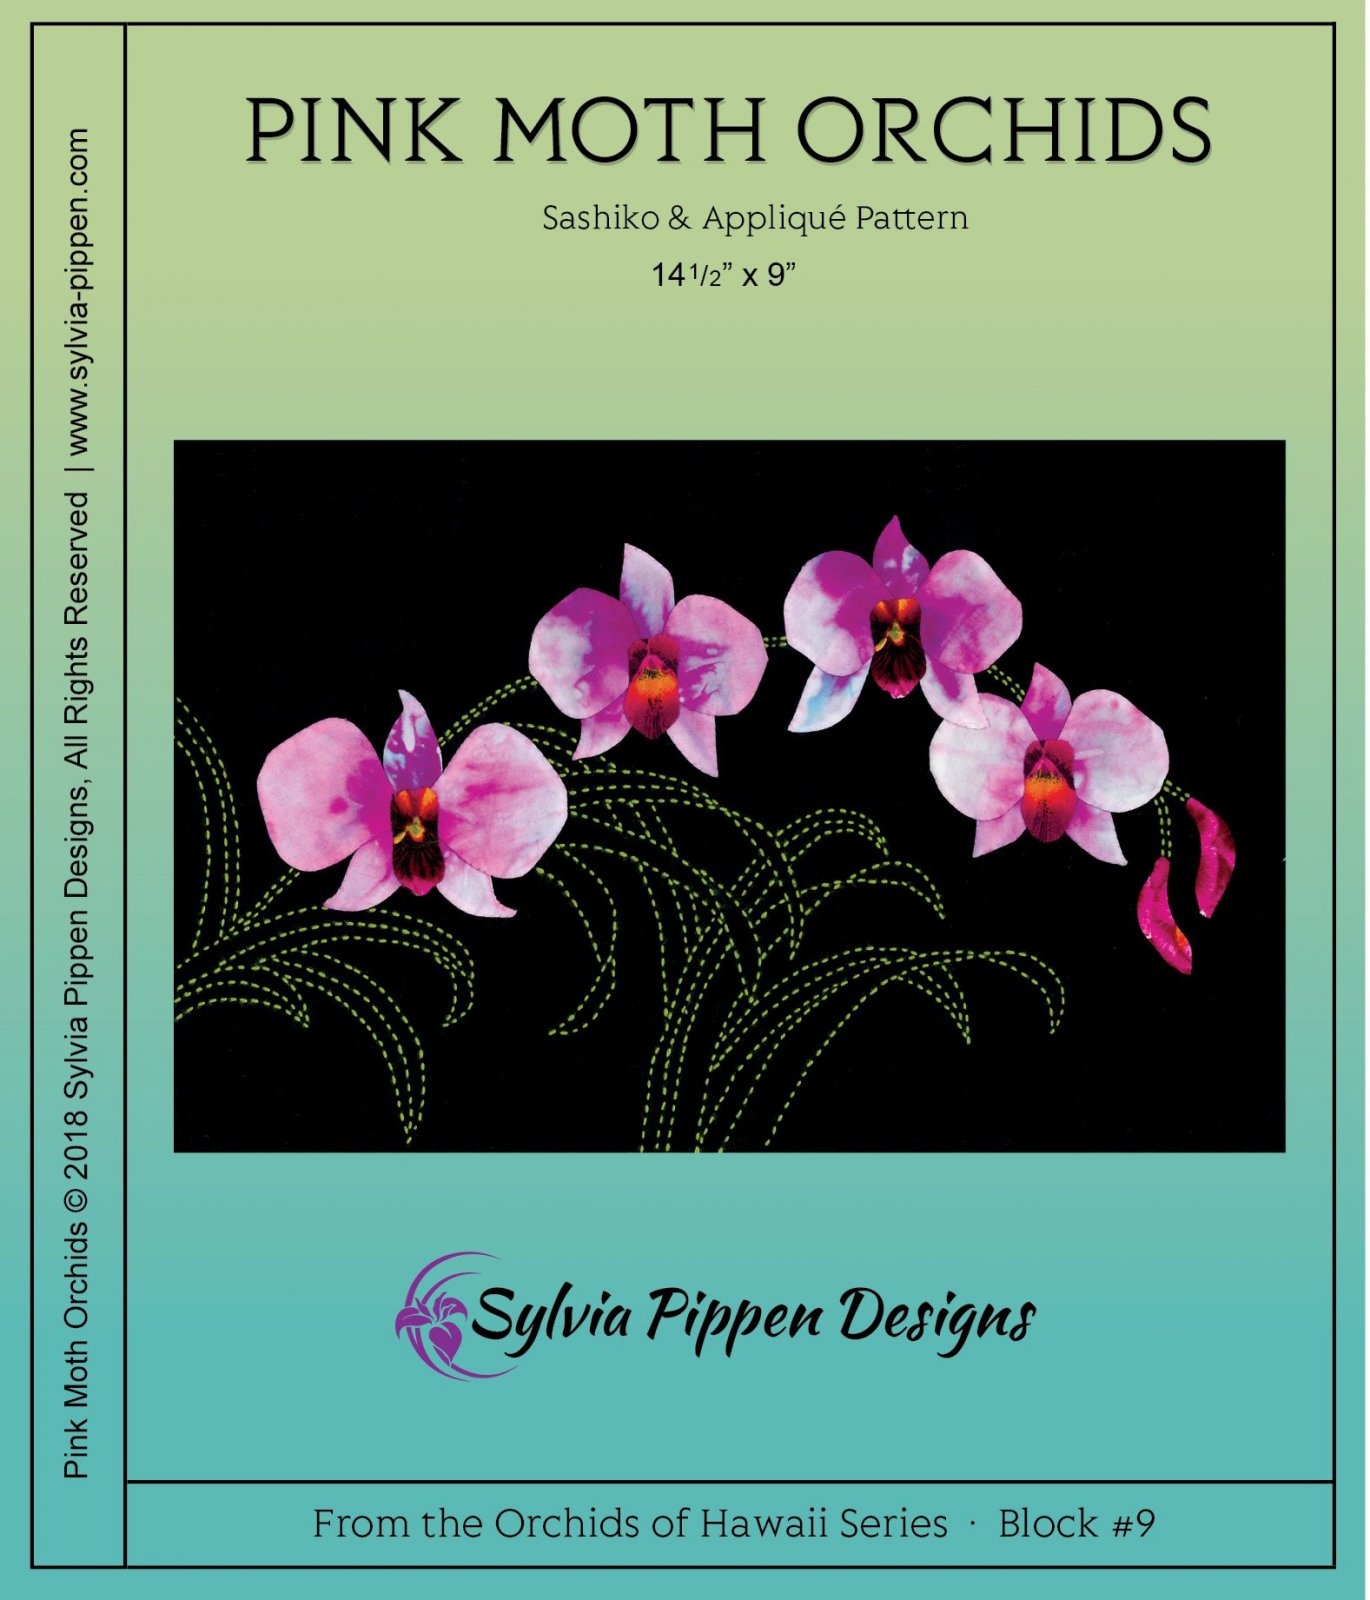 Pink Moth Orchids Sashiko & Applique Pattern from the Orchids Of Hawaii Series